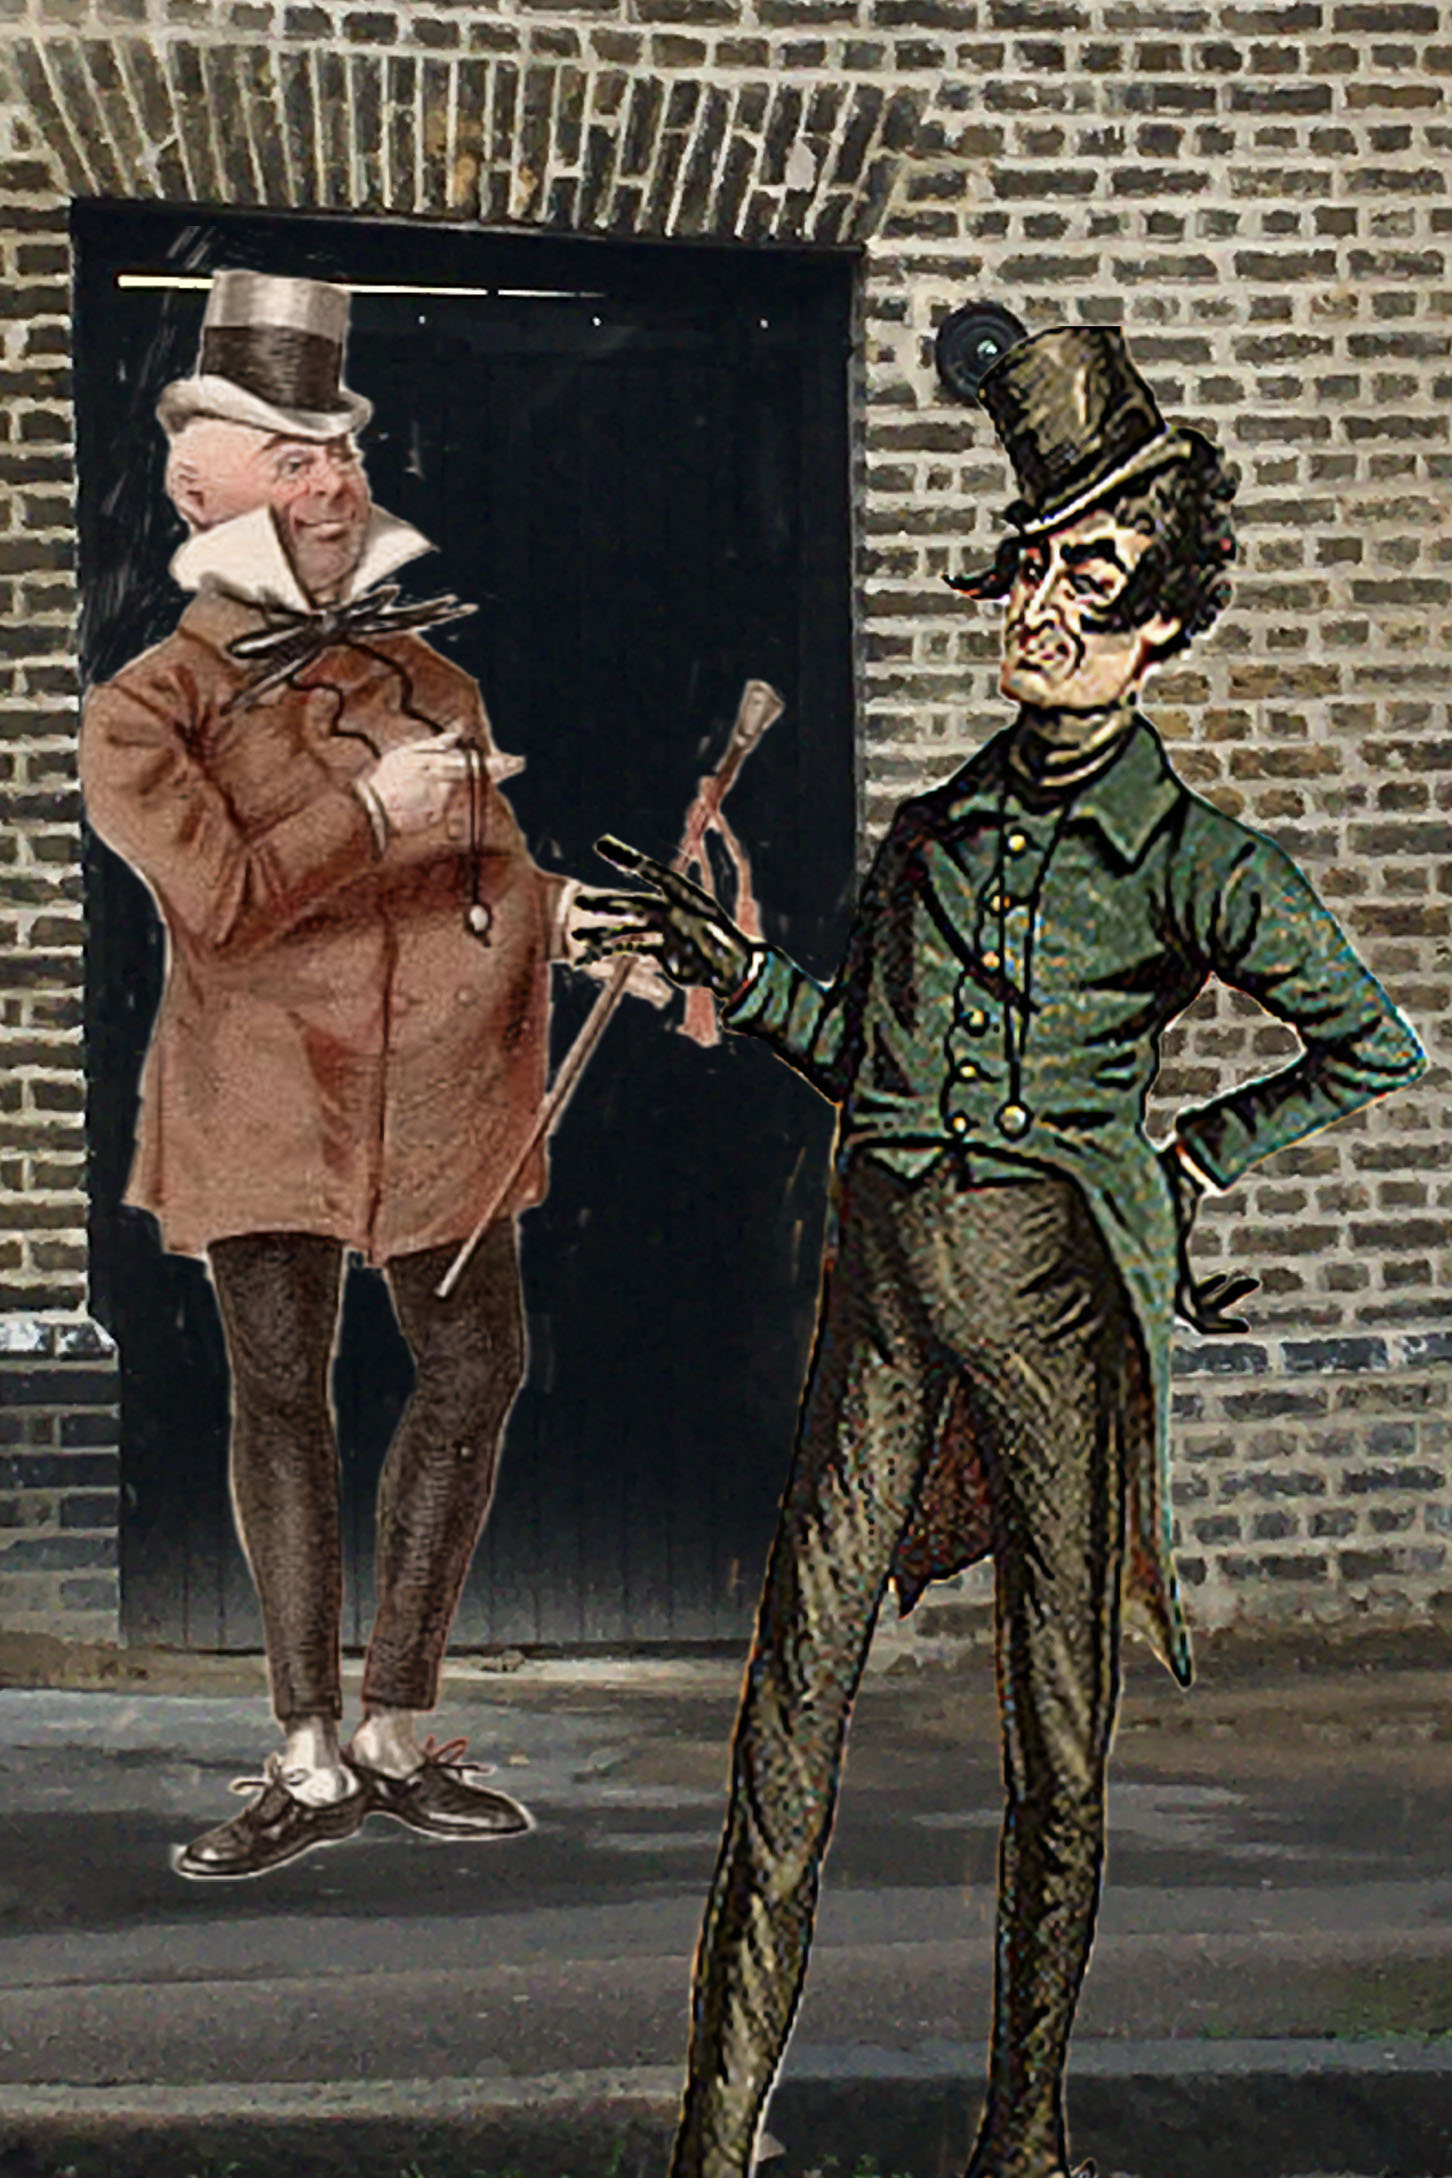 Joseph Clayton Clark's (aka Kyd) illustrations of two Dickens characters (Wilkins Micawber from David Copperfield and Mr. Jingle from the Pickwick Papers) next to the Grove Street gateway to the former Royal Navy Dockyard (now Convoys Wharf)